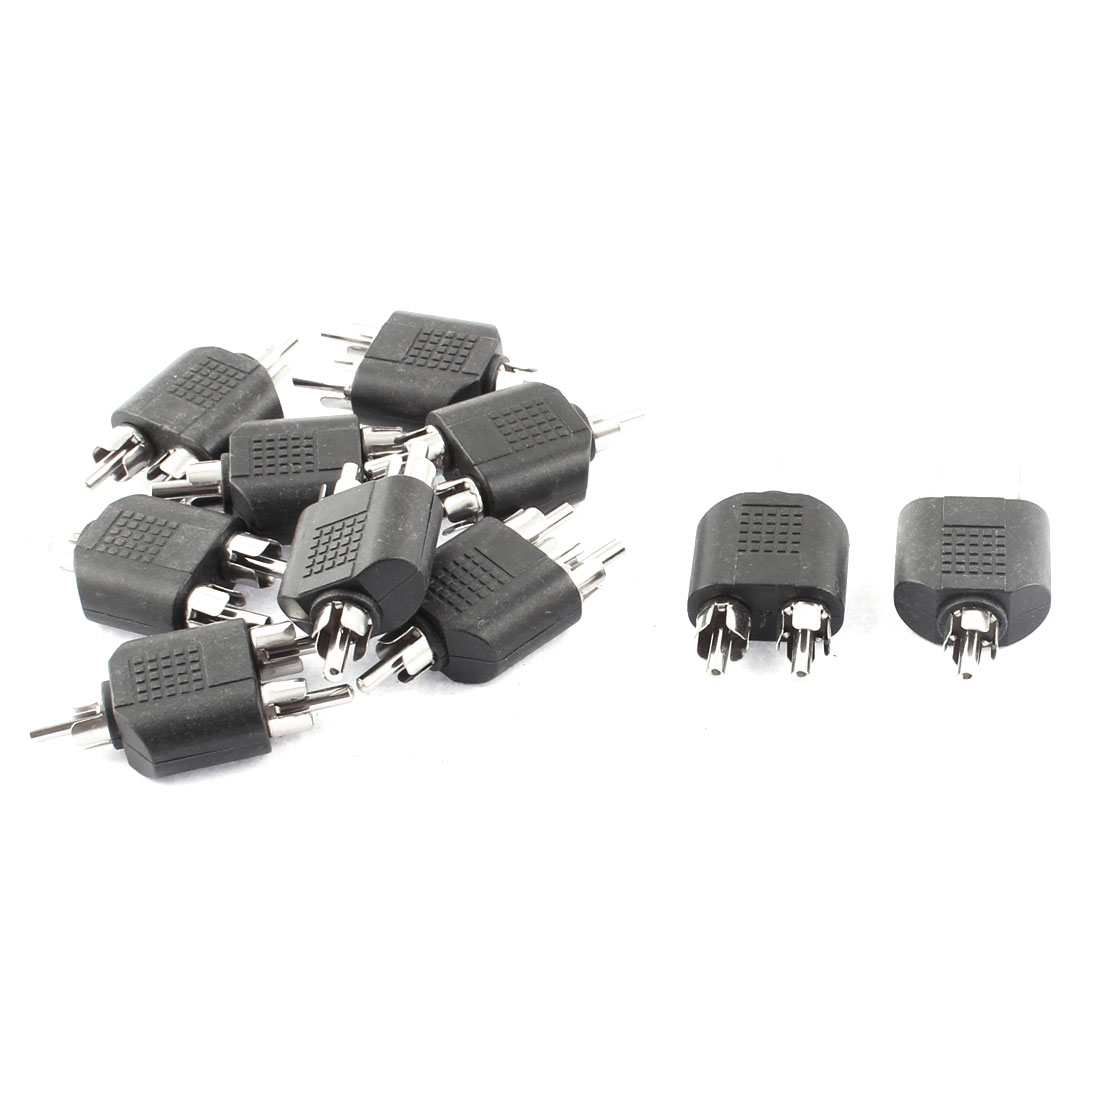 10pcs Dual RCA Male Jack to Male Stereo Audio Video Y Type Adapter Converter Connector